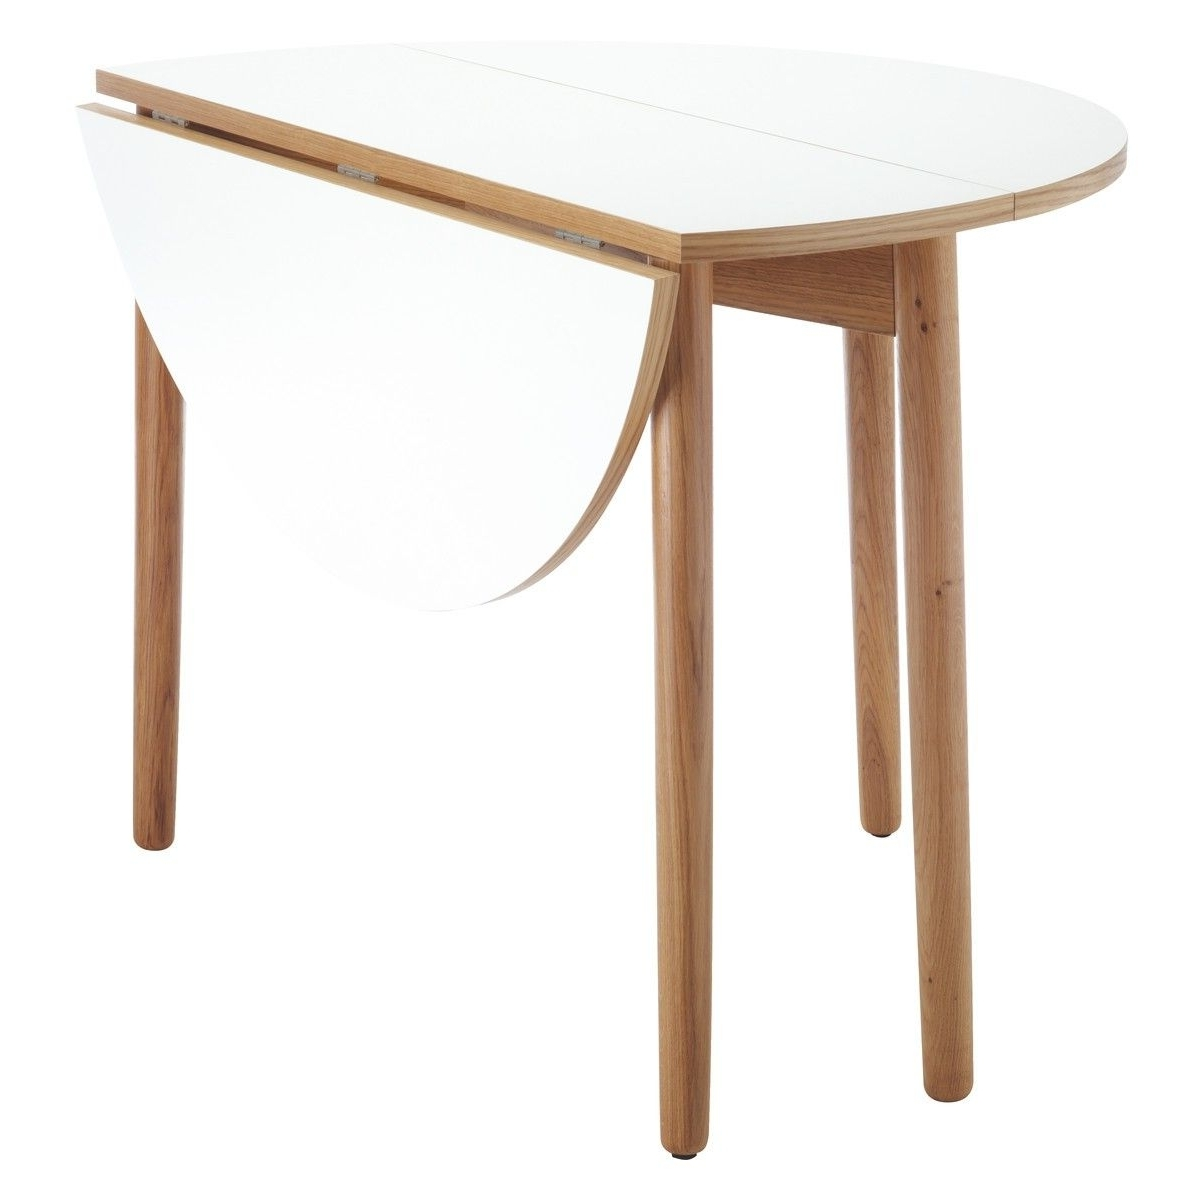 Cheap Folding Dining Tables With Fashionable Best Suki 2 4 Seat White Folding Round Dining Table Buy Now At (View 8 of 25)